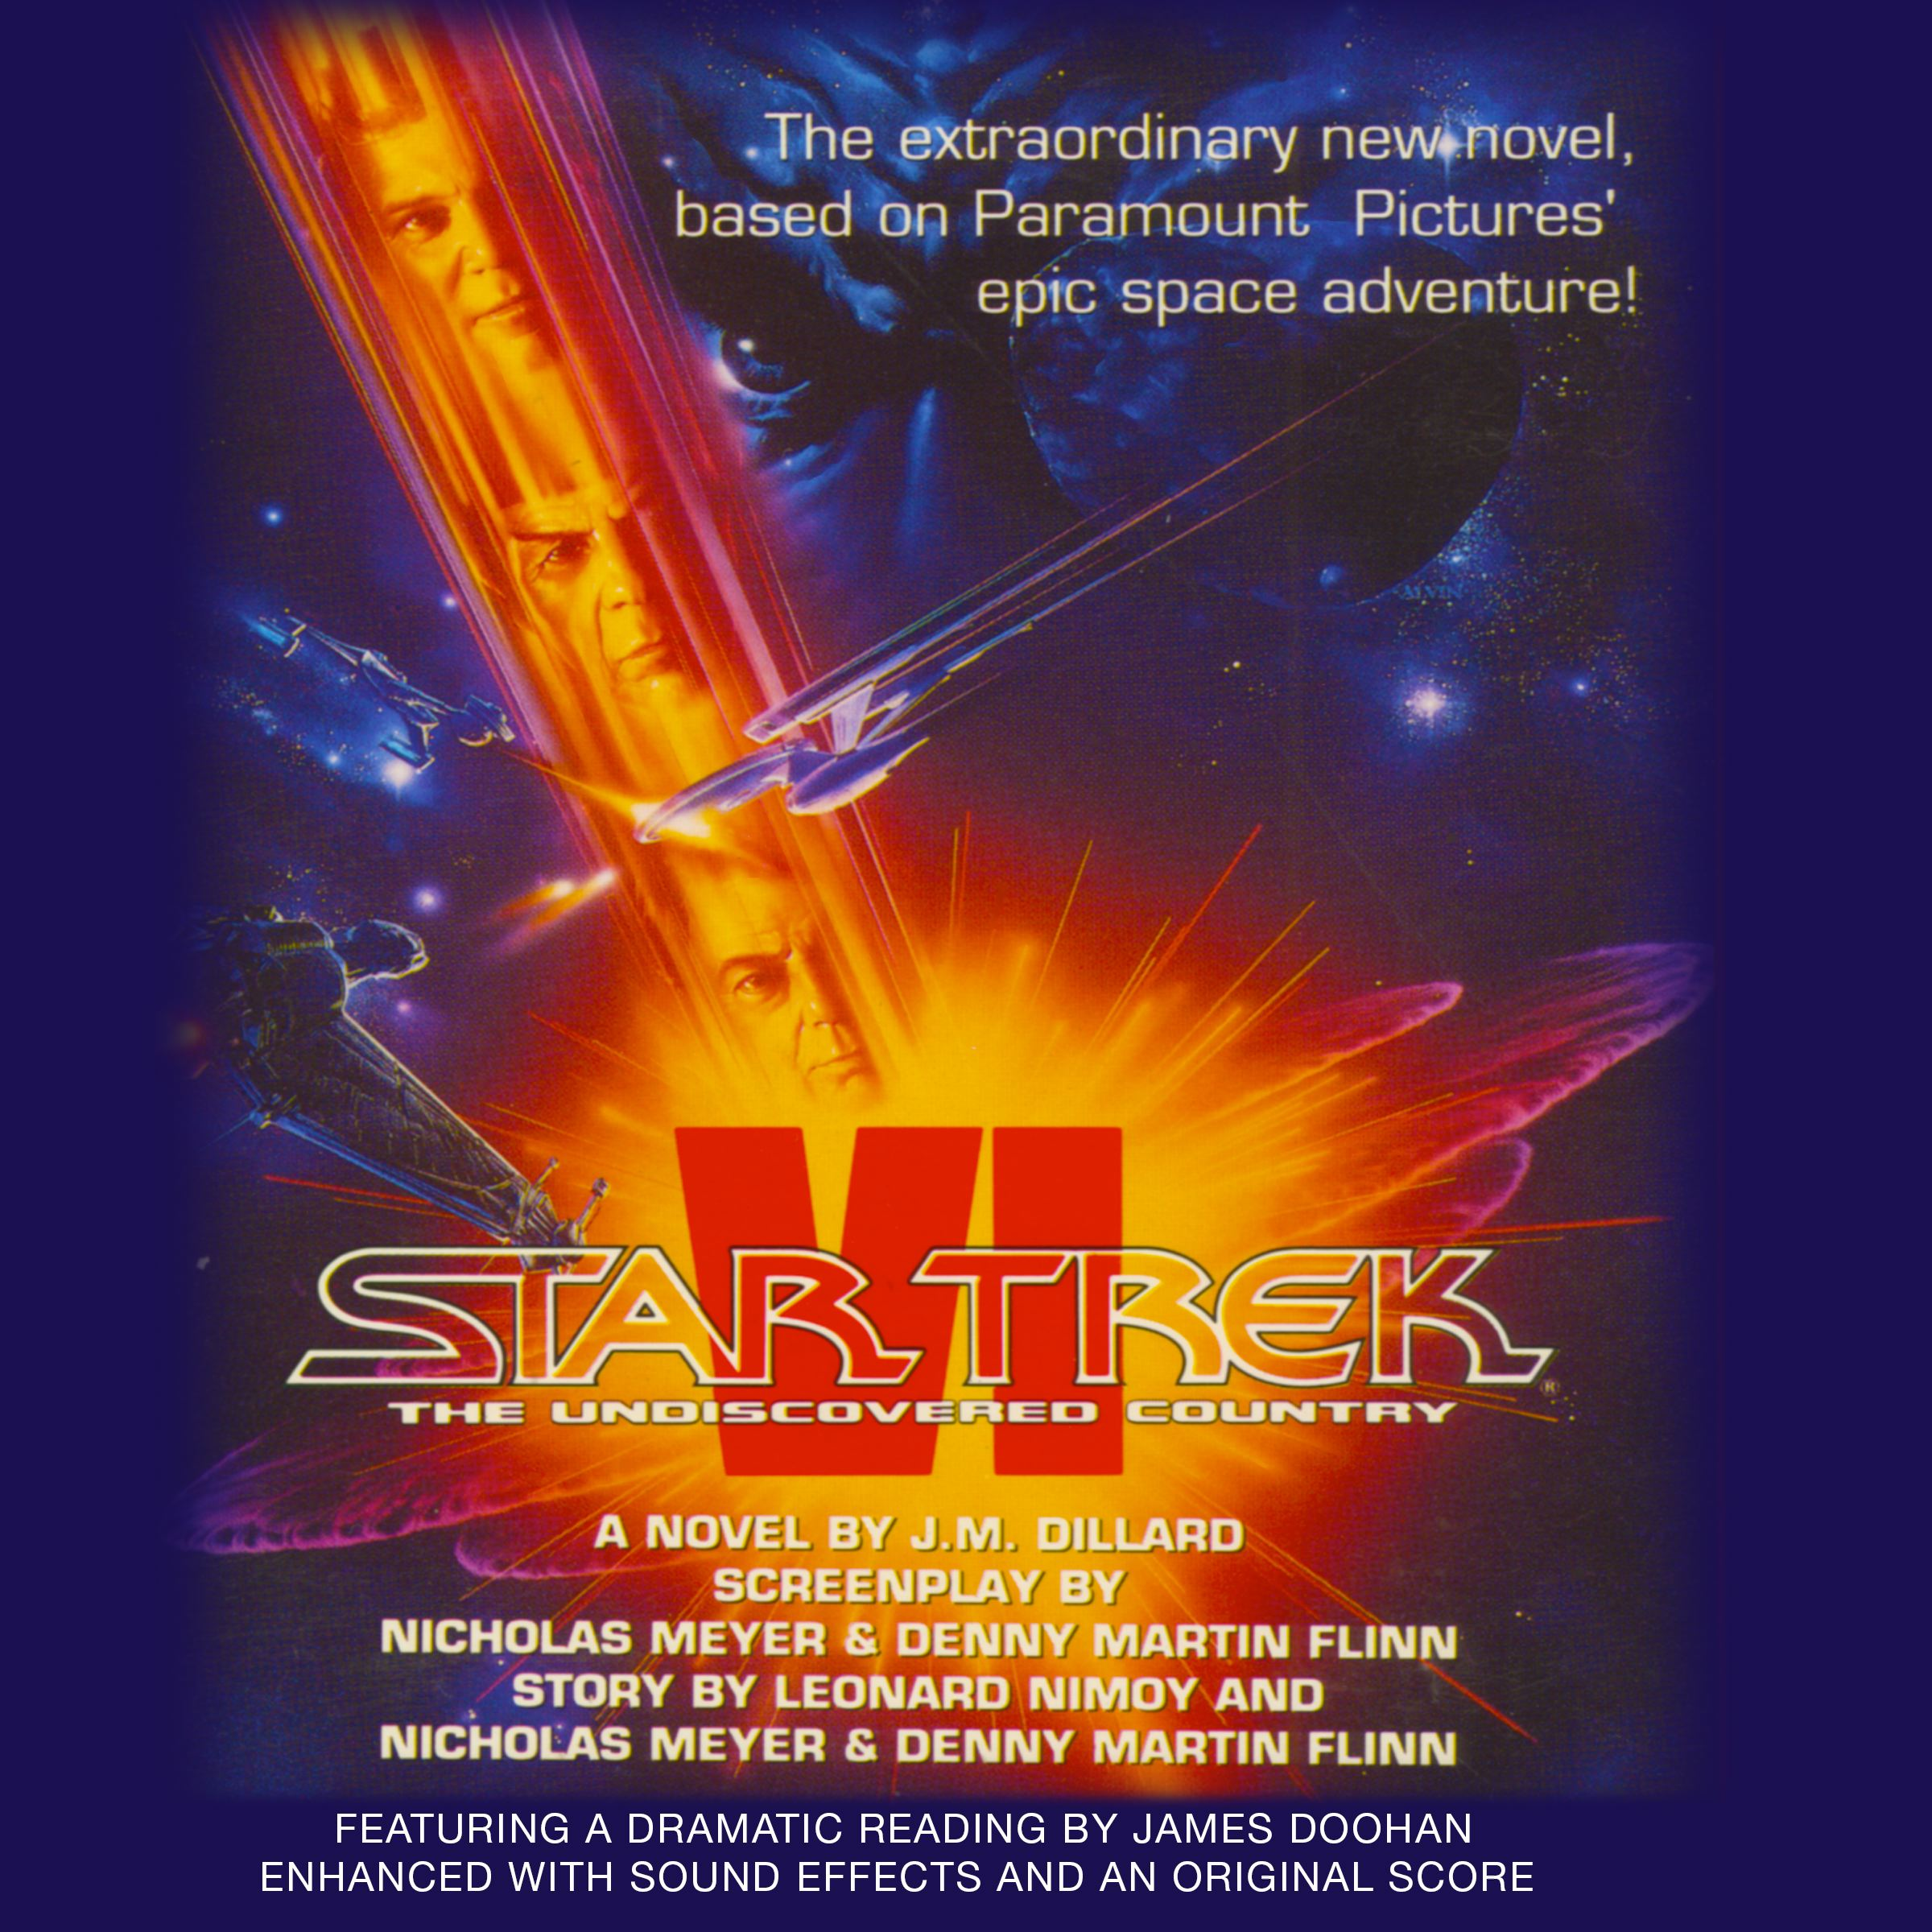 Star trek vi the undiscovered country 9781442368286 hr